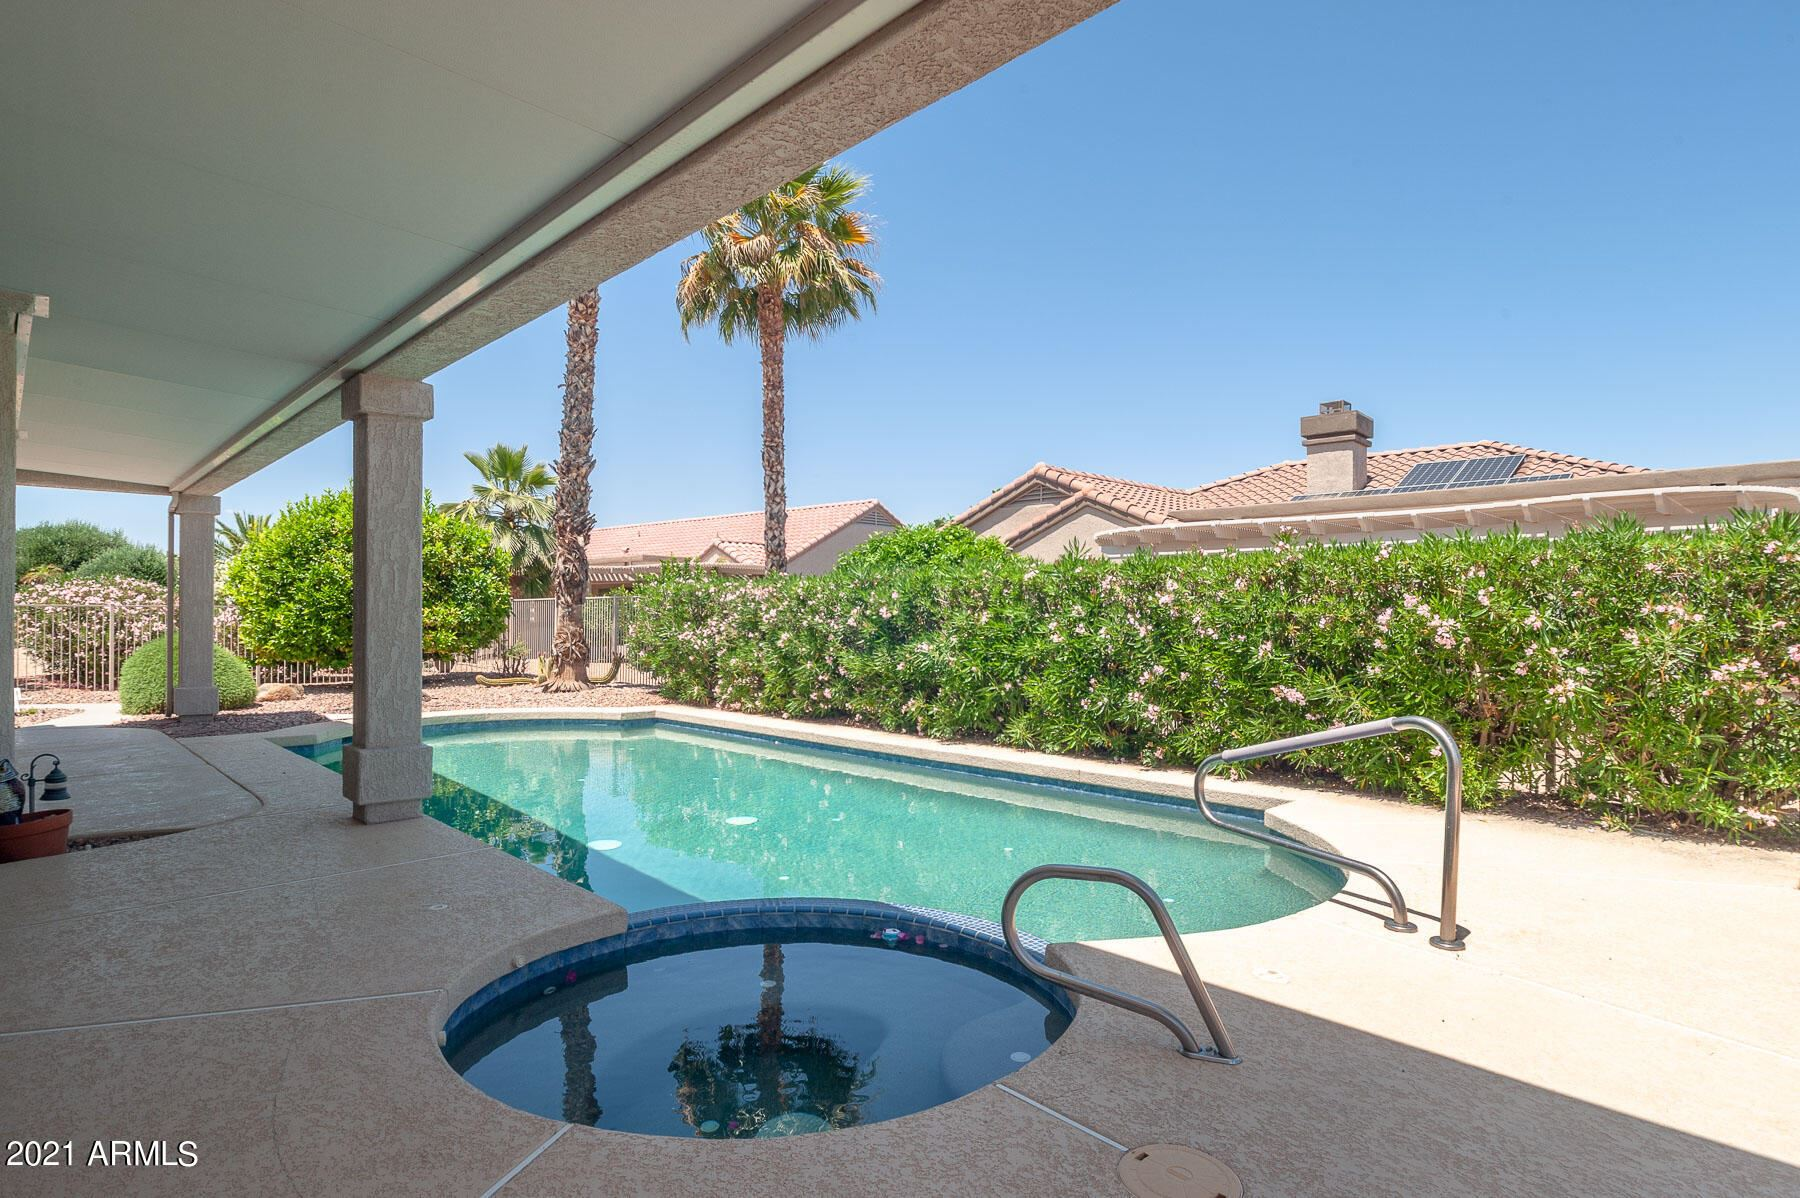 15534 W LAS VERDES Way, Surprise, AZ 85374 - MLS#: 6231470